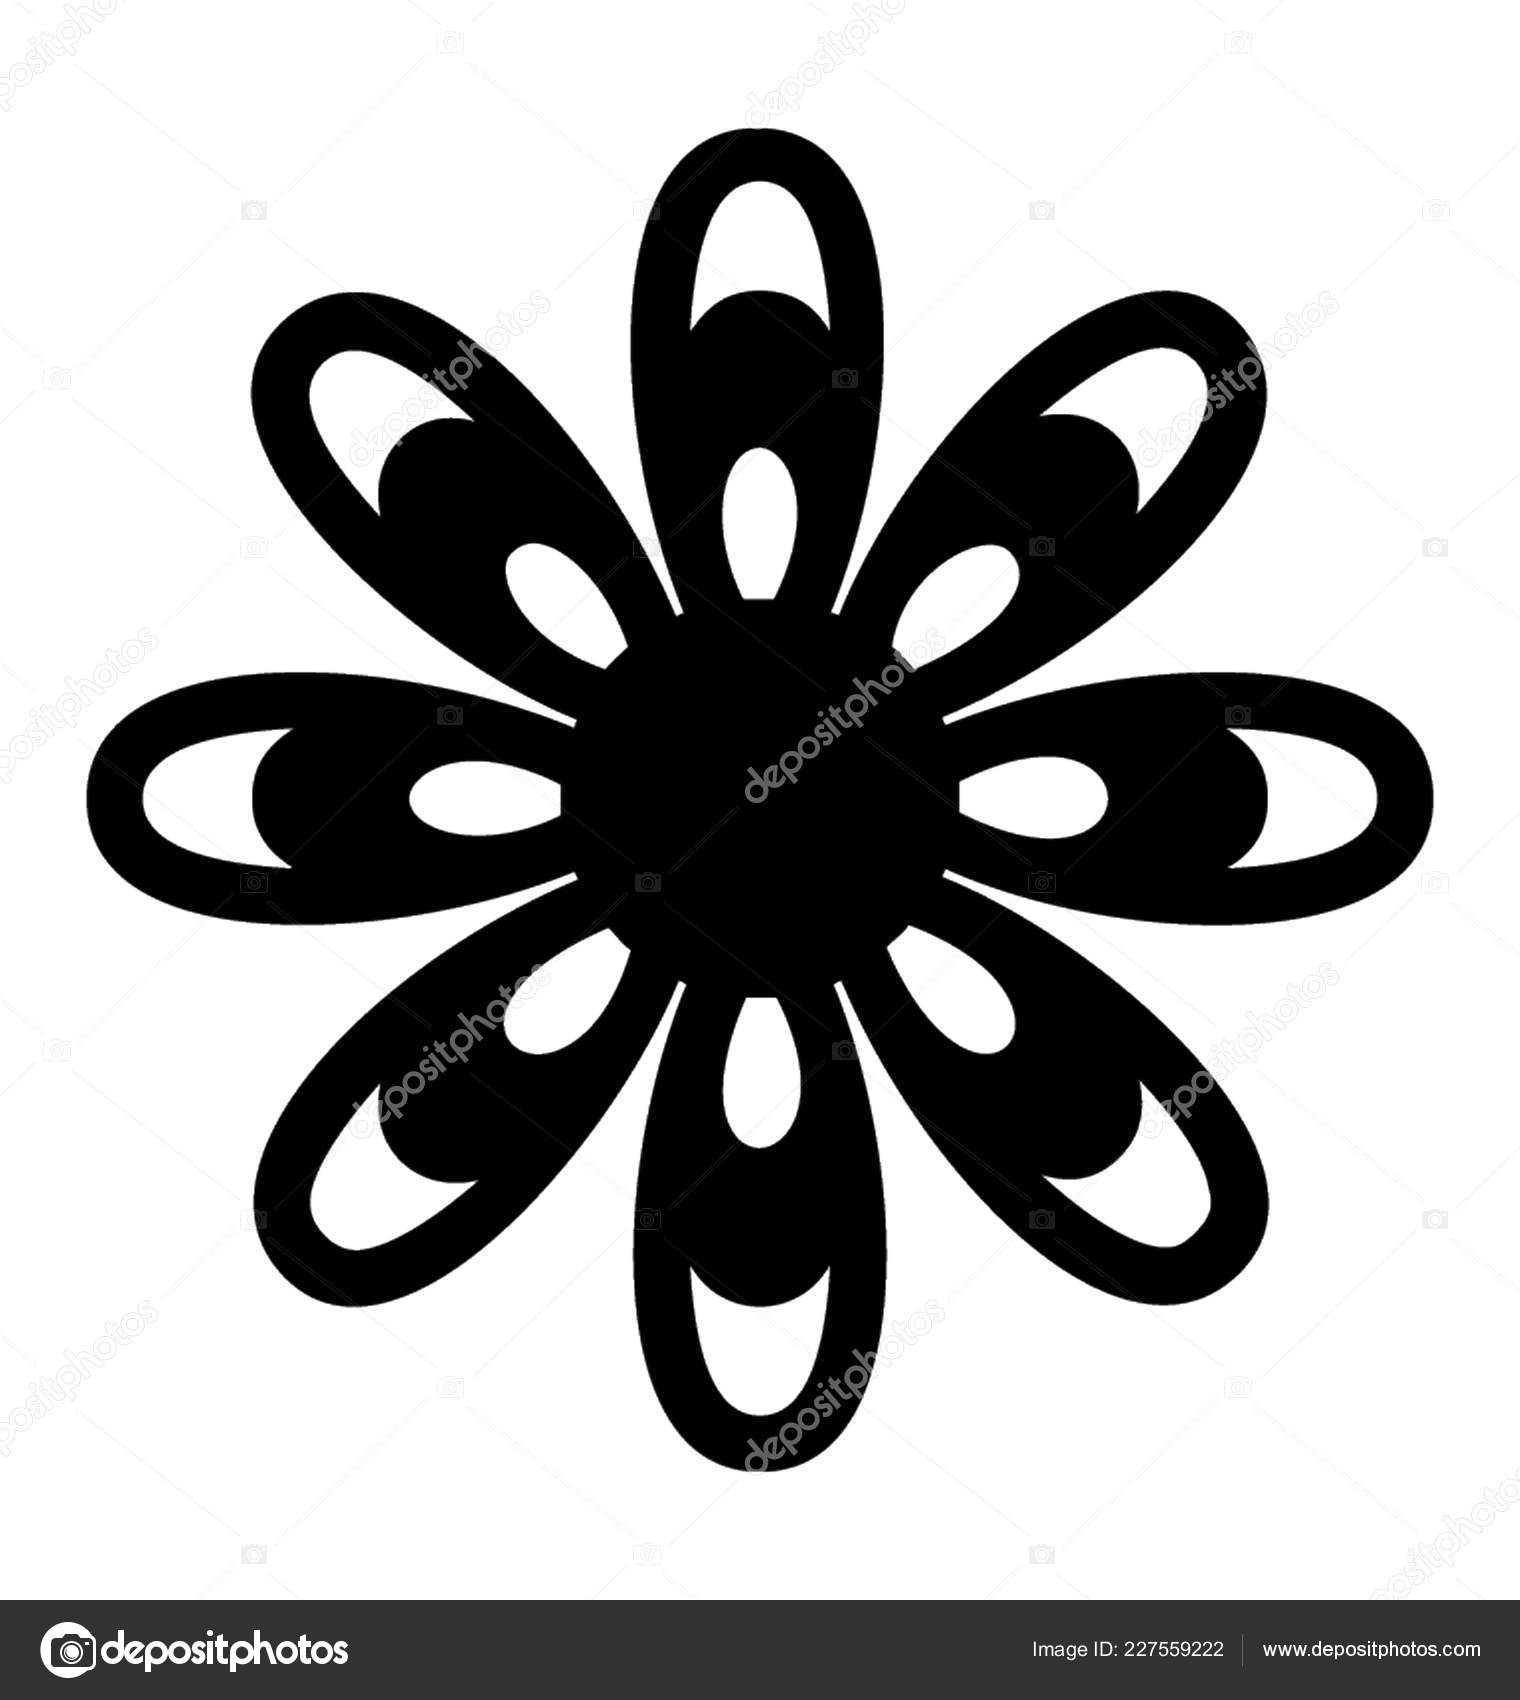 Jasmine Flower Tattoo Designs Jasmine Flower Solid Icon Flower Design Stock Vector C Prosymbols 227559222